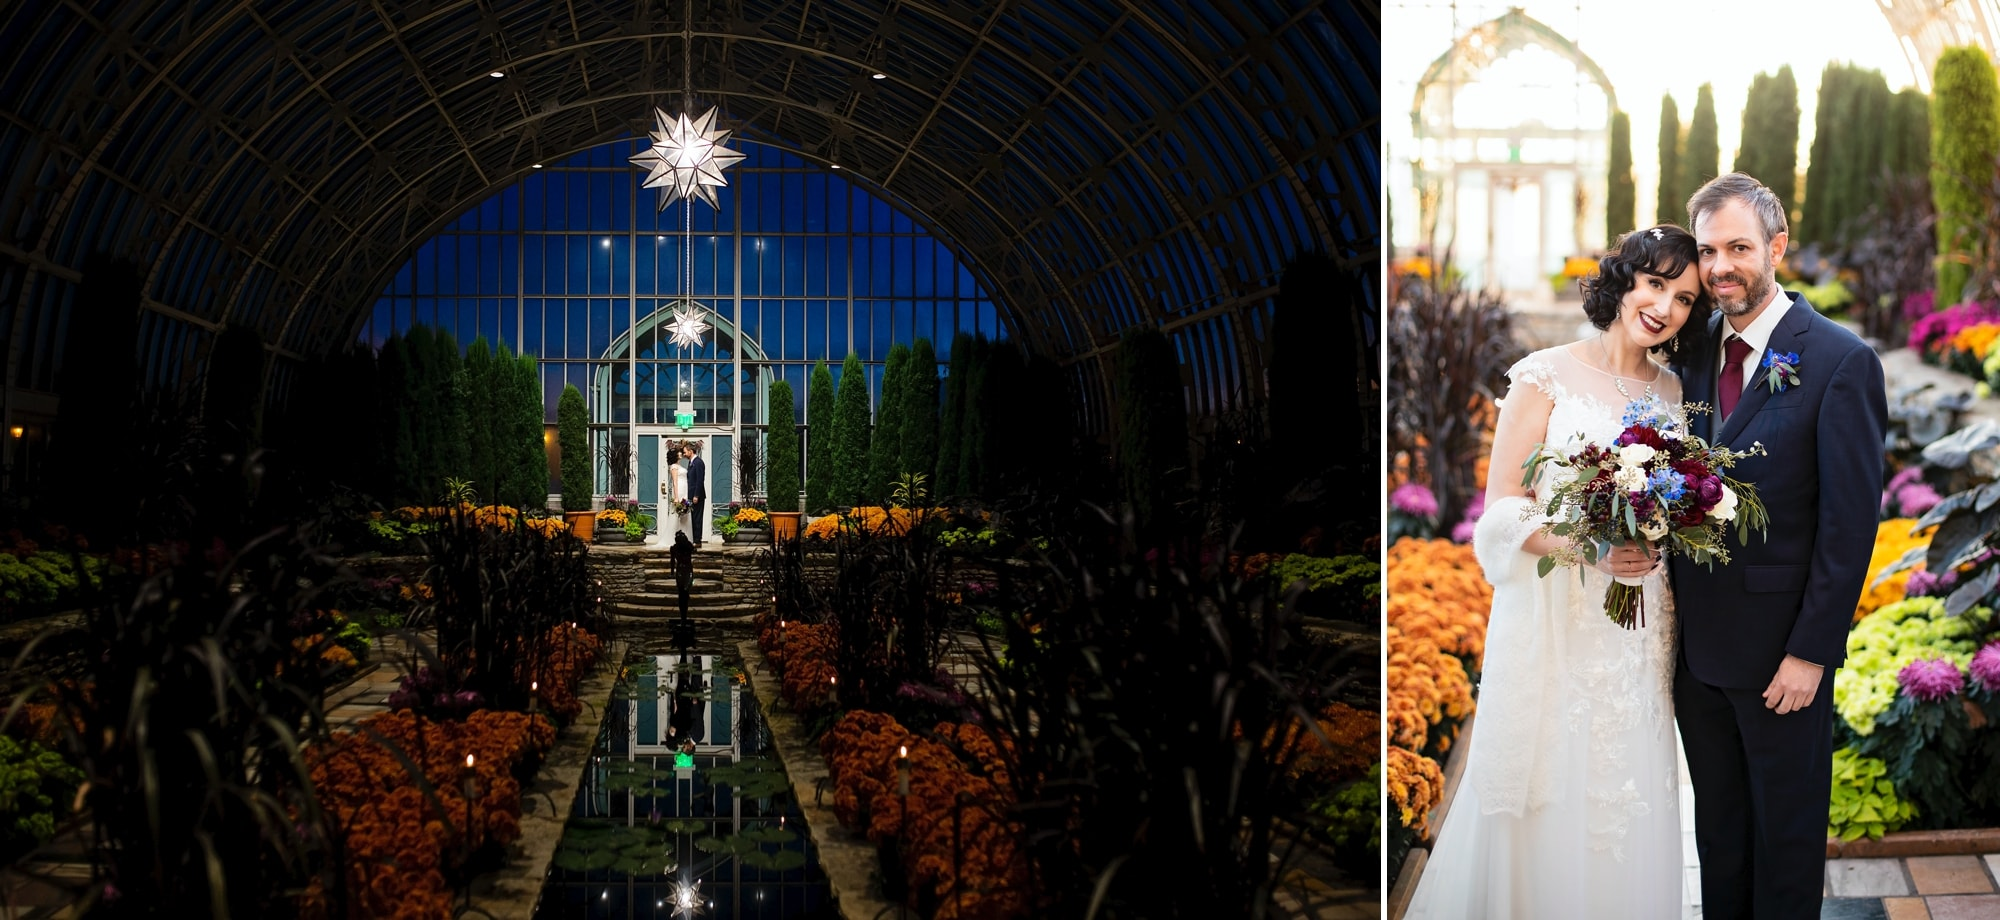 Sarah and Dan's Micro wedding ceremony at Como Conservatory in St. Paul, Minnesota.